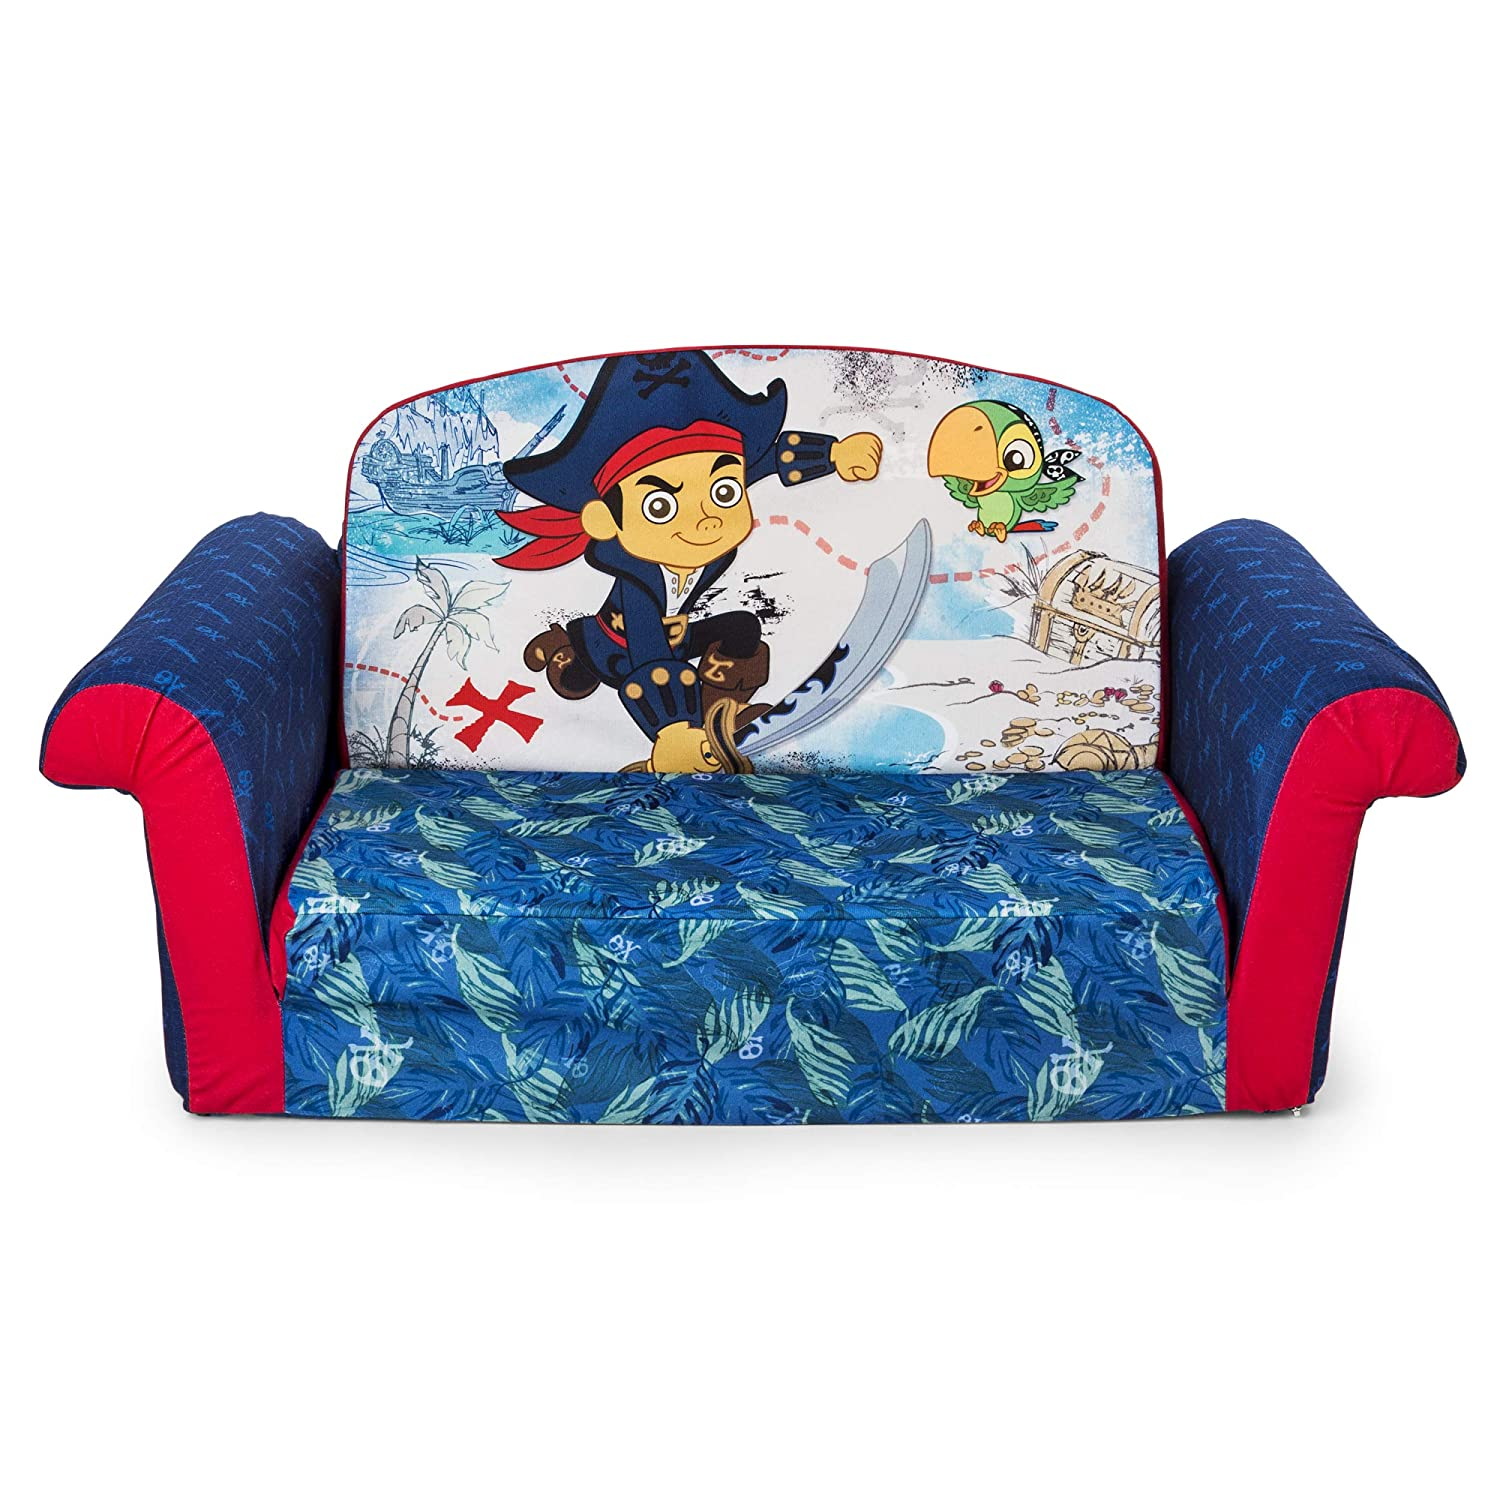 Marshmallow Fun Furniture Jake and The Neverland Pirates Flip Open Sofa Spin Master 6021846